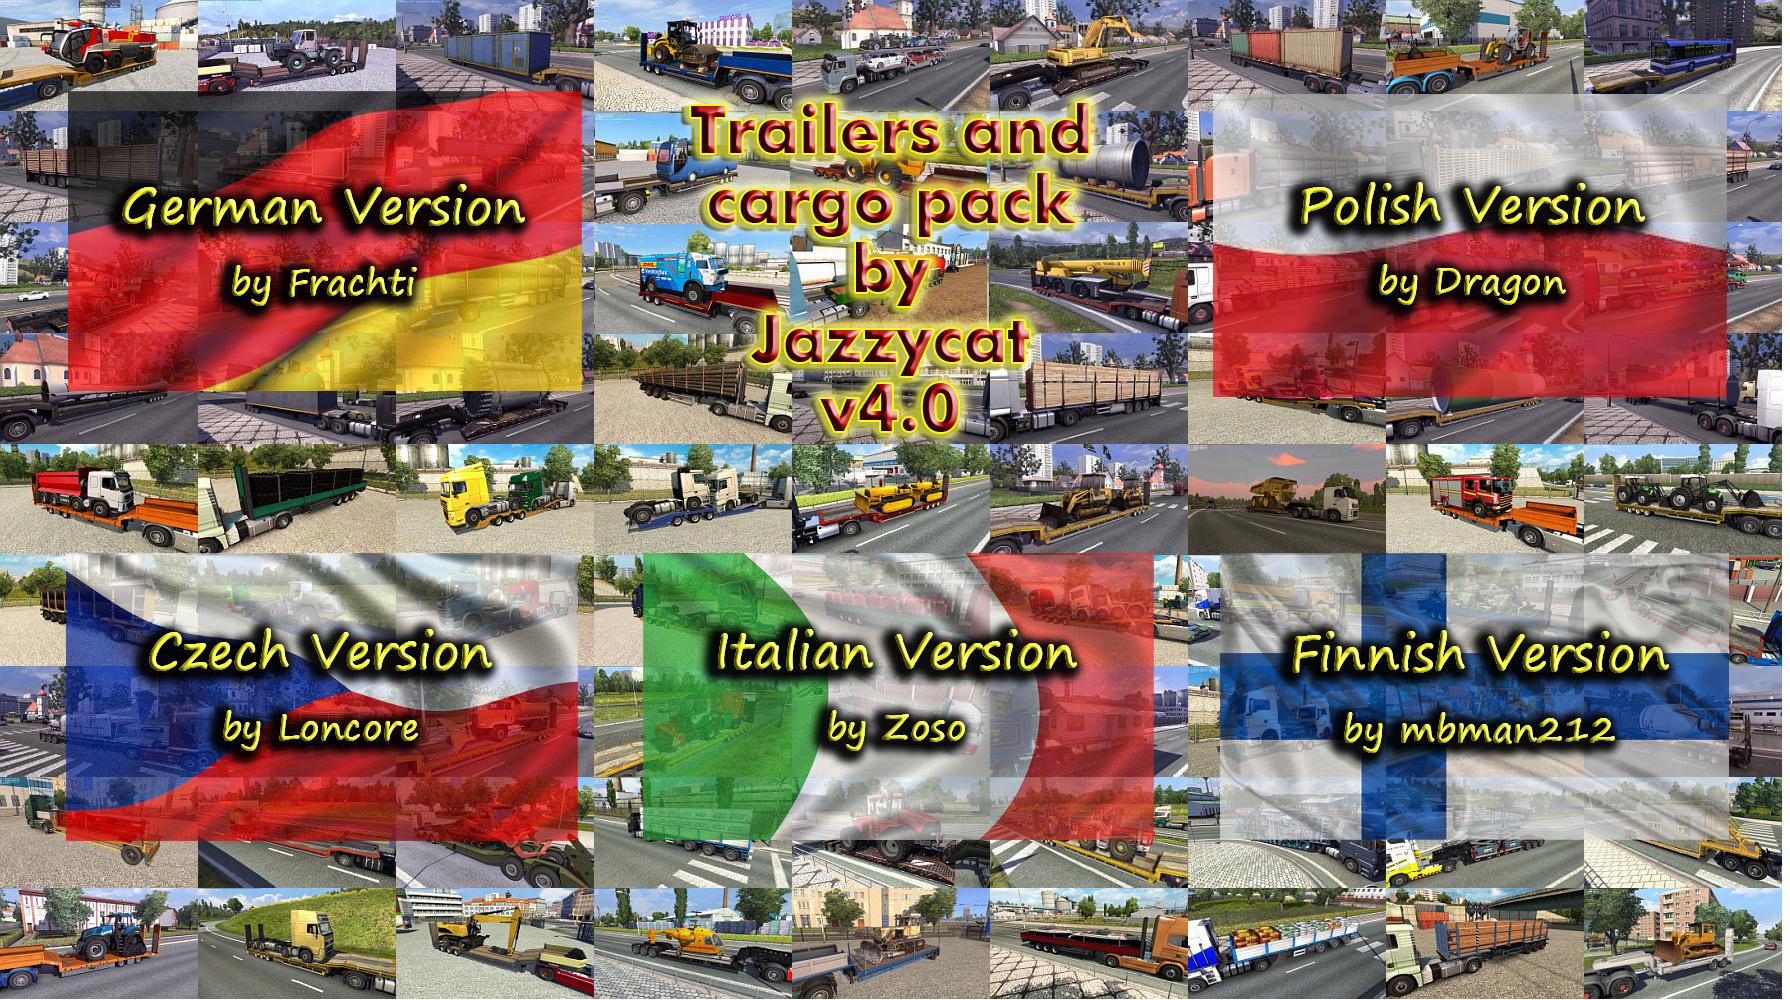 Language Pack for Trailers and Cargo Pack v4.0 by Jazzycat